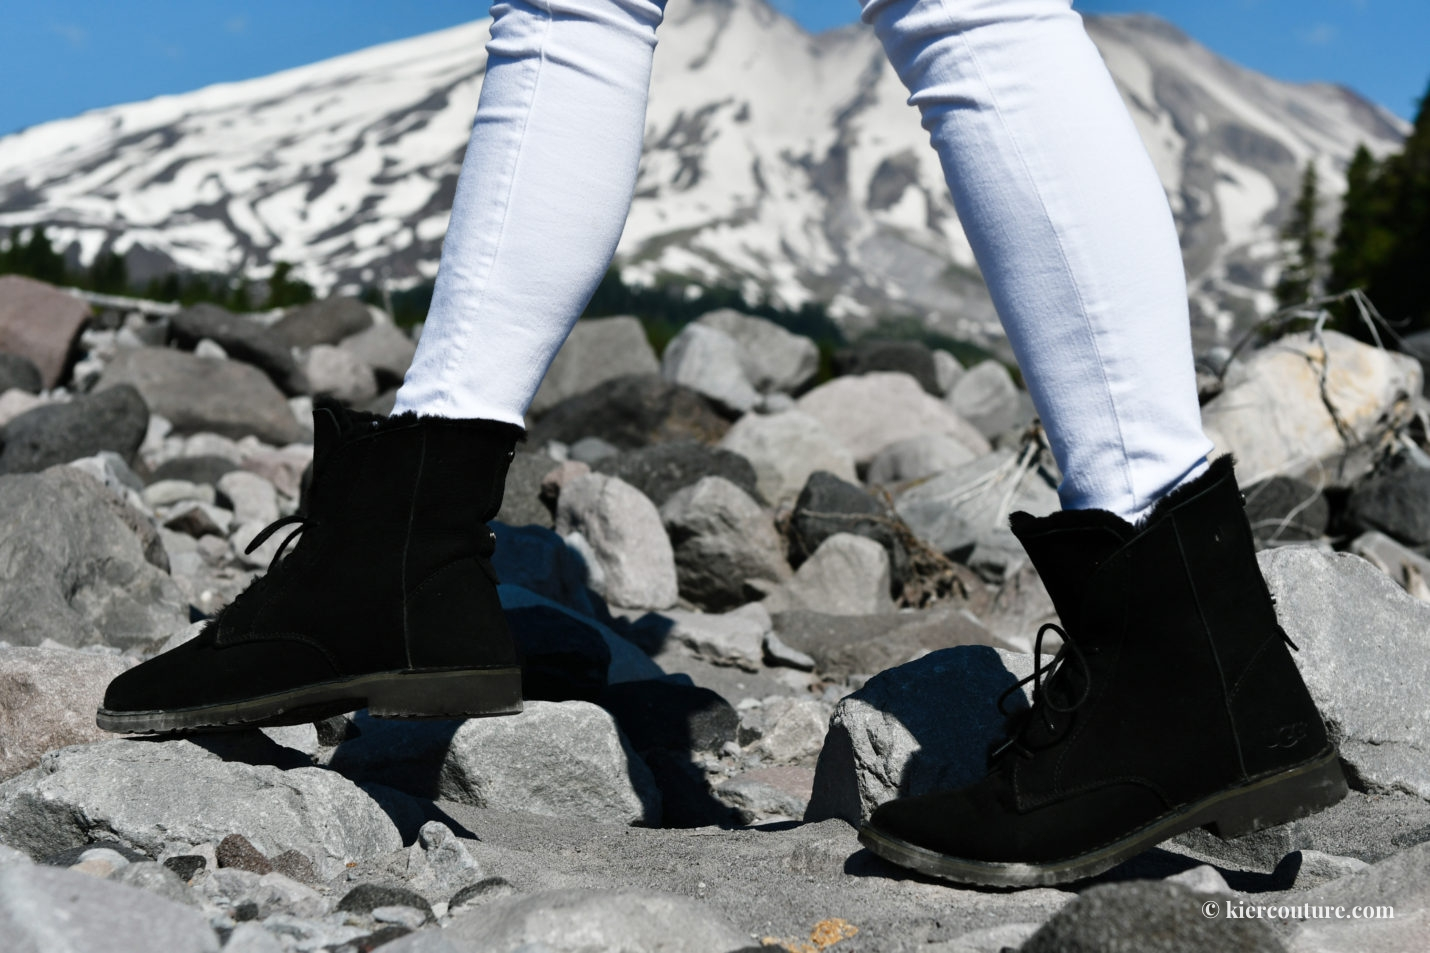 UGG Quincy boot in black at Mount St Helens